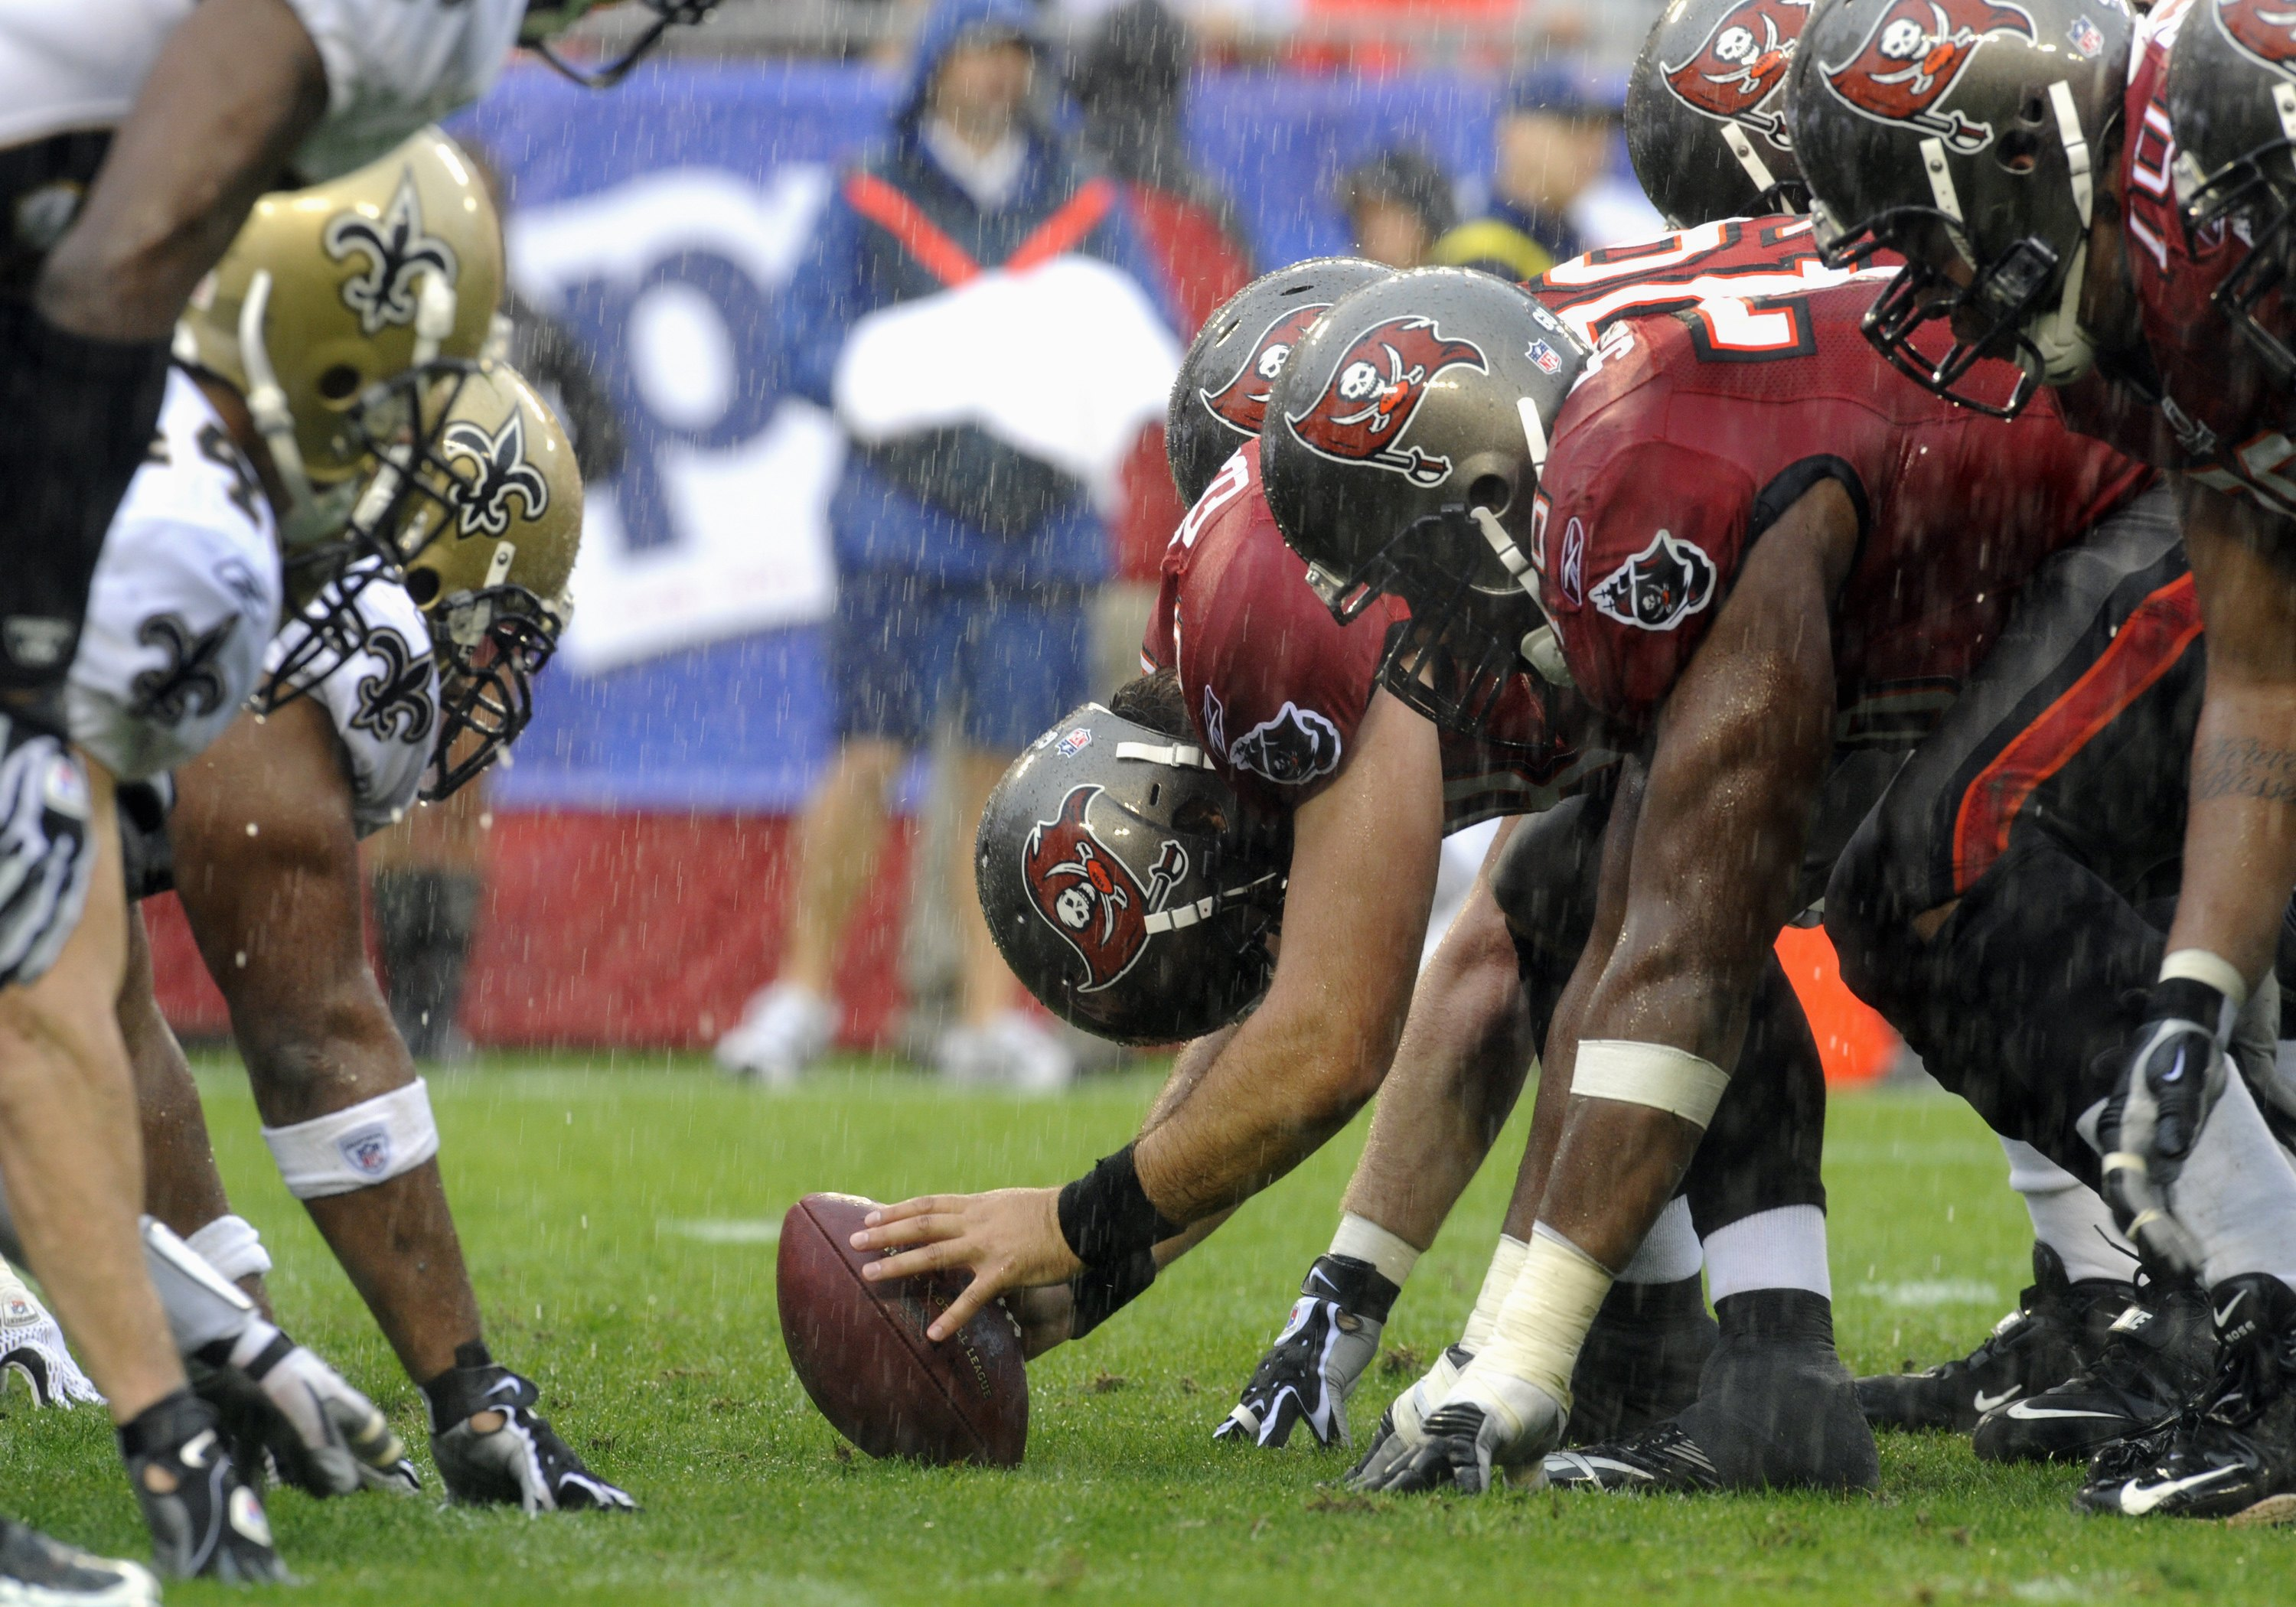 TAMPA, FL - NOVEMBER 30: Long snapper Andrew Economos #48 of the Tampa Bay Buccaneers sets for a snap in the rain against the New Orleans Saints at Raymond James Stadium on November 30, 2008 in Tampa, Florida.  (Photo by Al Messerschmidt/Getty Images)